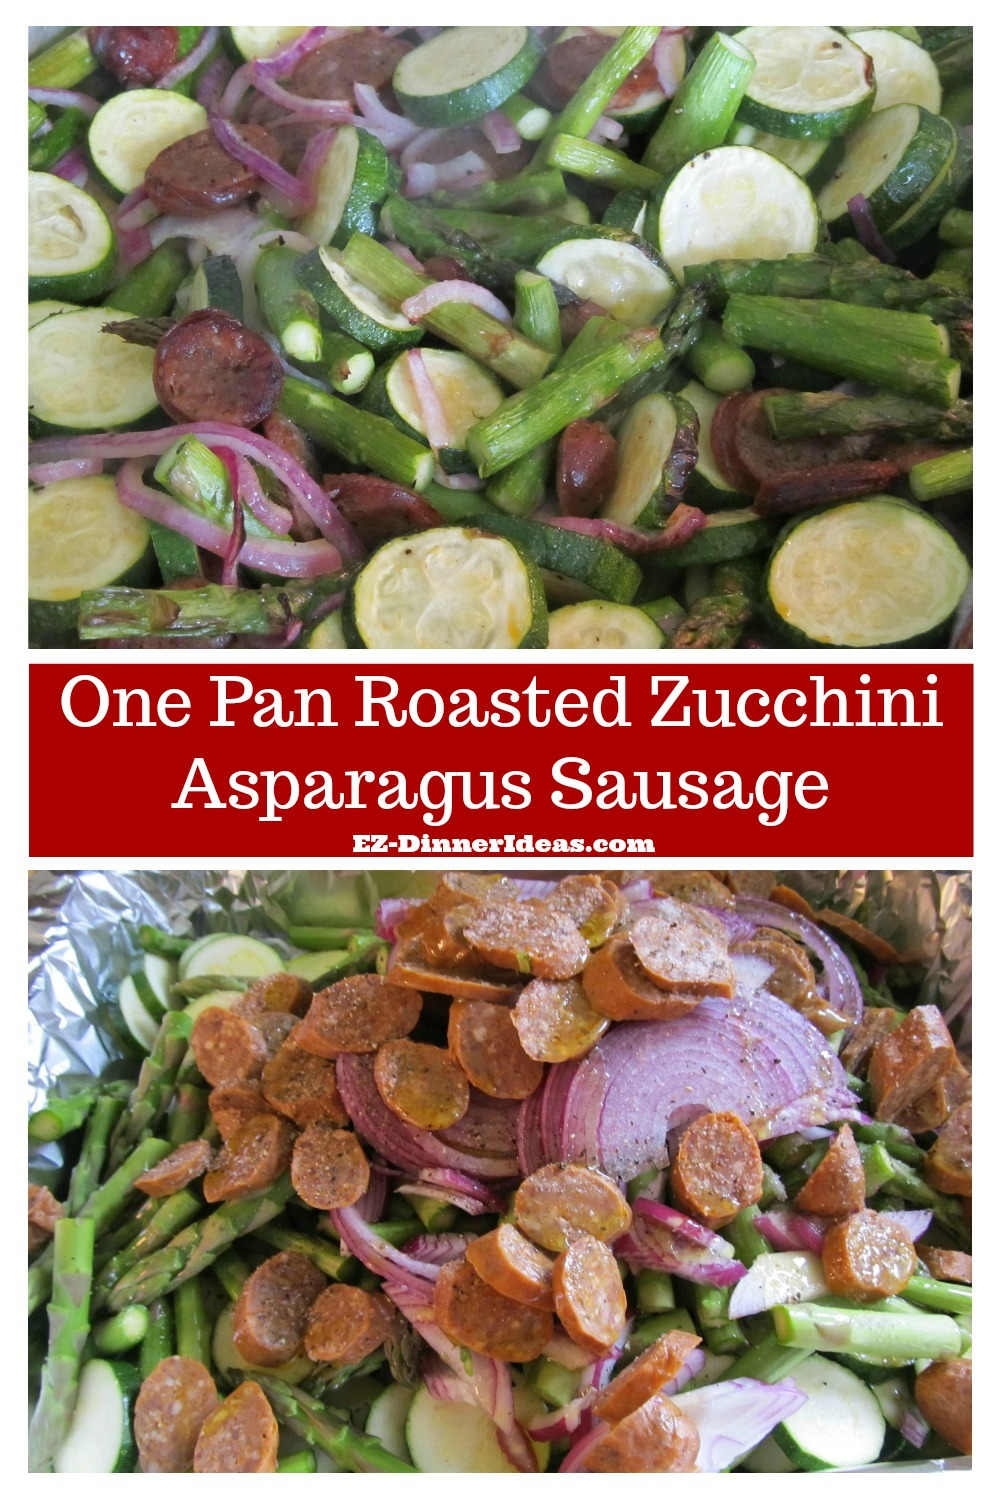 One Pan Roasted Zucchini Asparagus Sausage - Easy one pot meal loaded with vegetables and flavors.  Your only job is to chop and drop.  Then, wait for dinner to be ready.